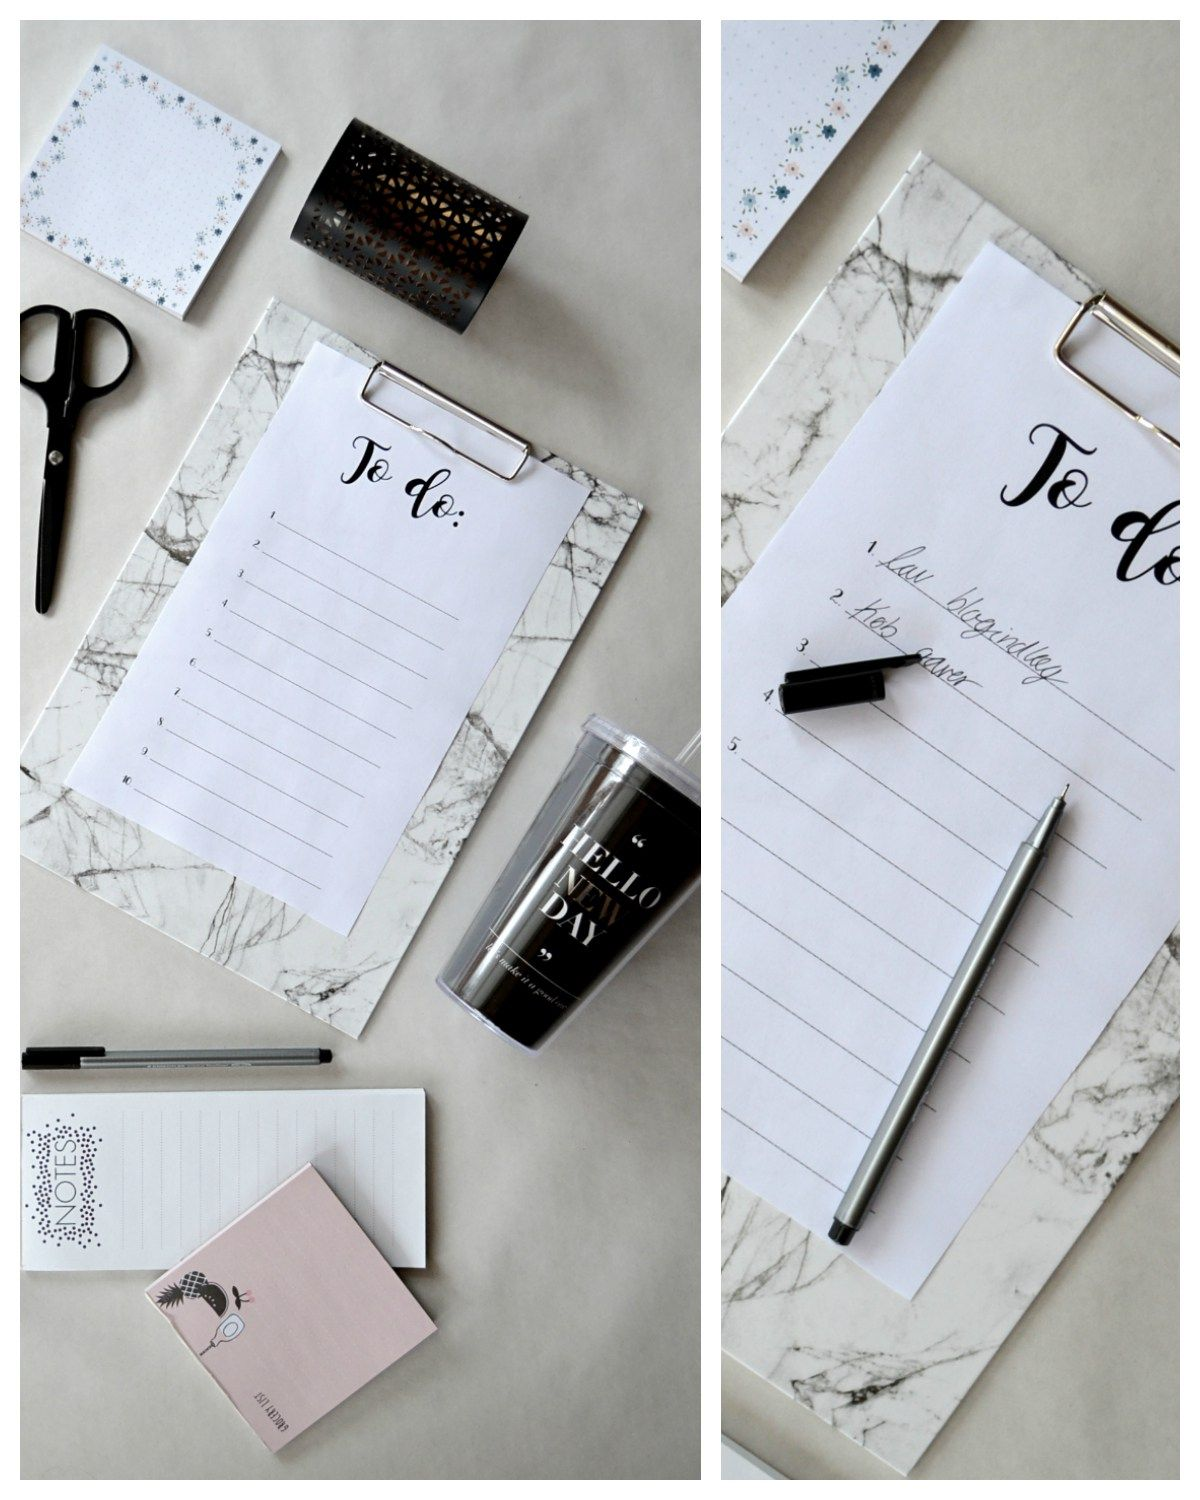 TO DO LISTS: free download and printable to do list for all of you busy bees out there!  http://www.karolinehaugaard.dk/saadan-holder-jeg-styr-paa-tingene-printselv/  #study #todo